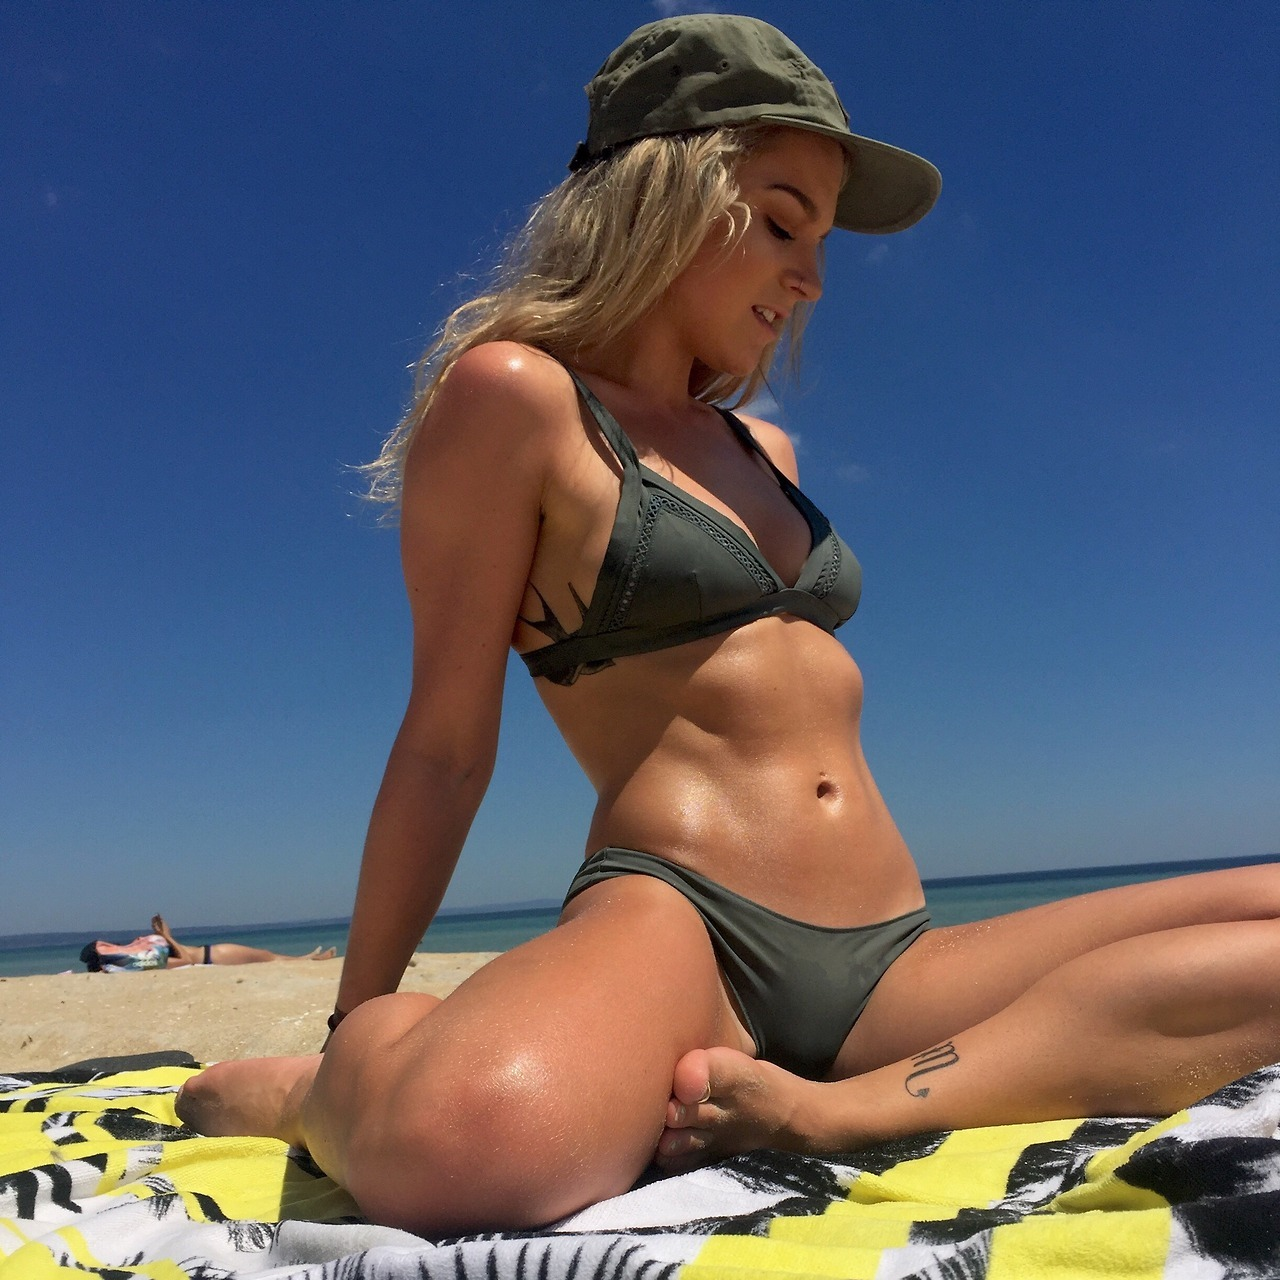 Brand spanking new girl Jcrc showing off a perfect beach body